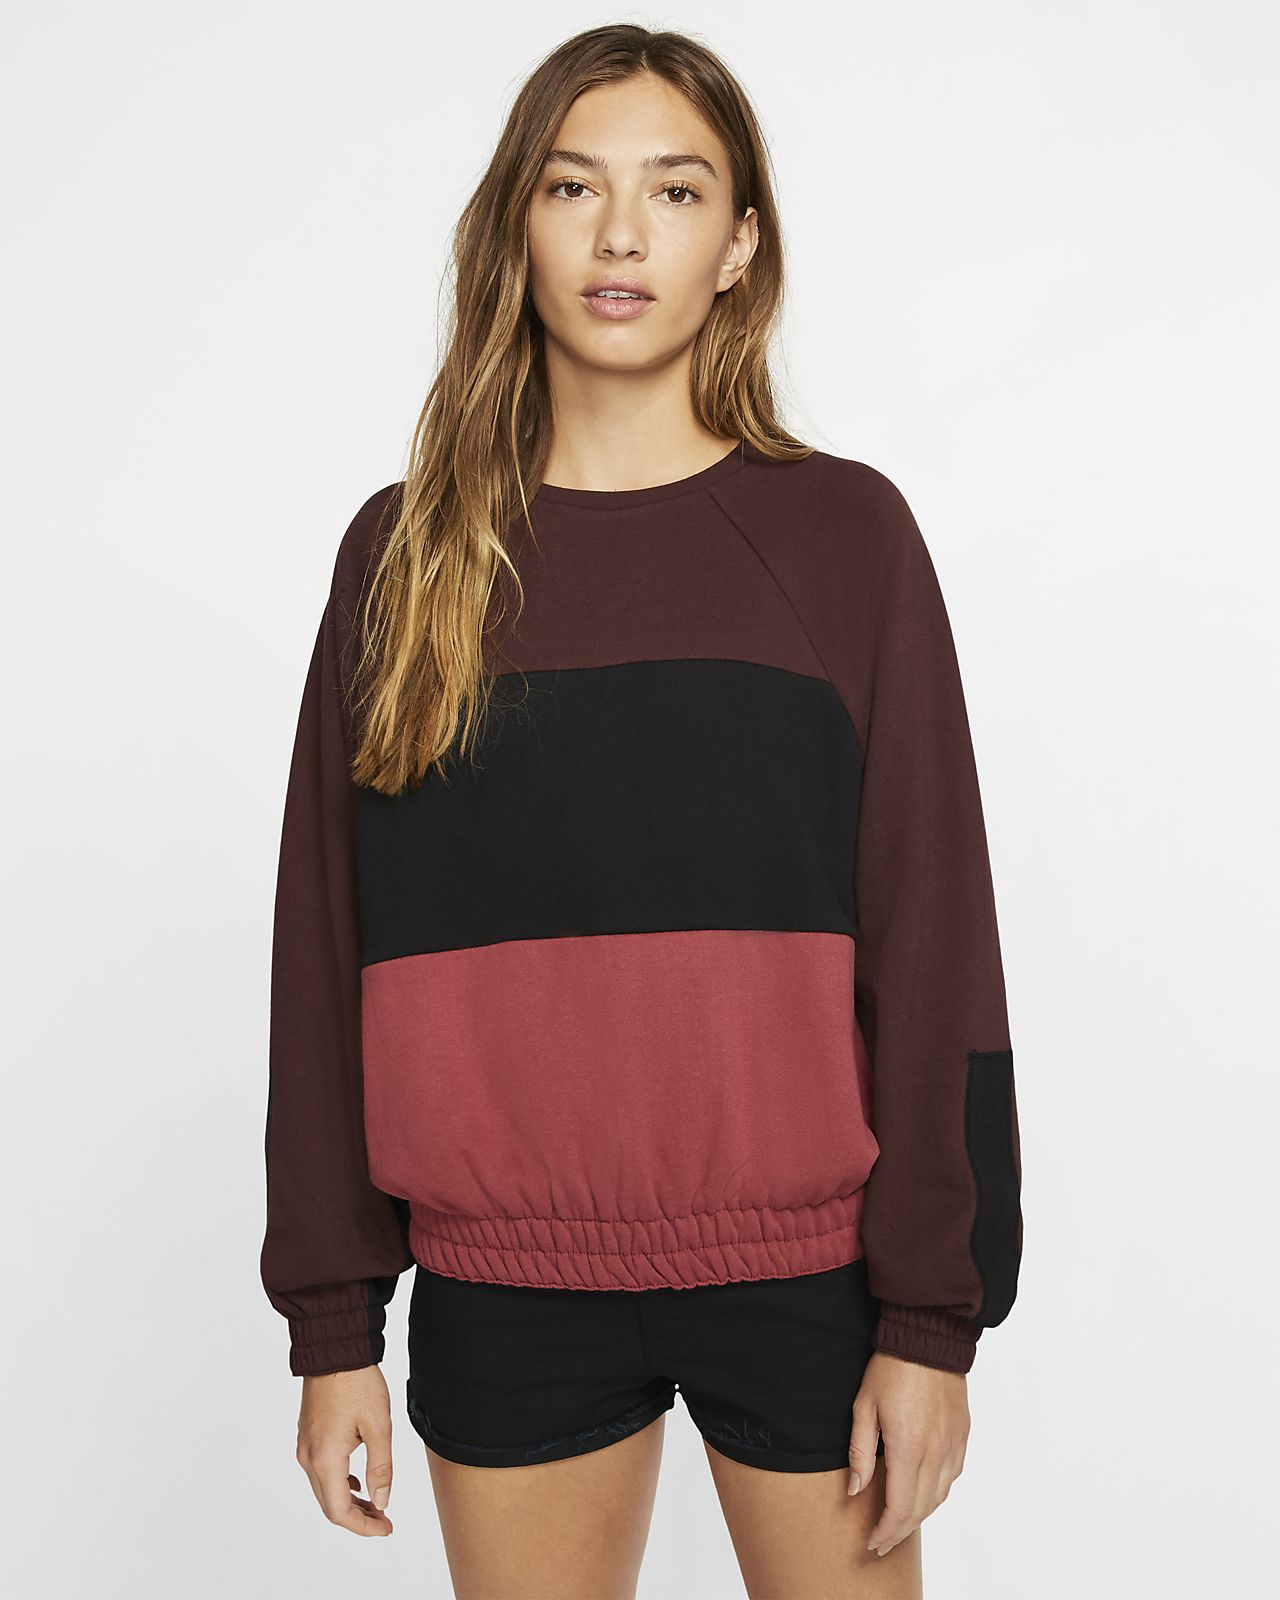 Hurley One and Only Dolman Women's Fleece Crew